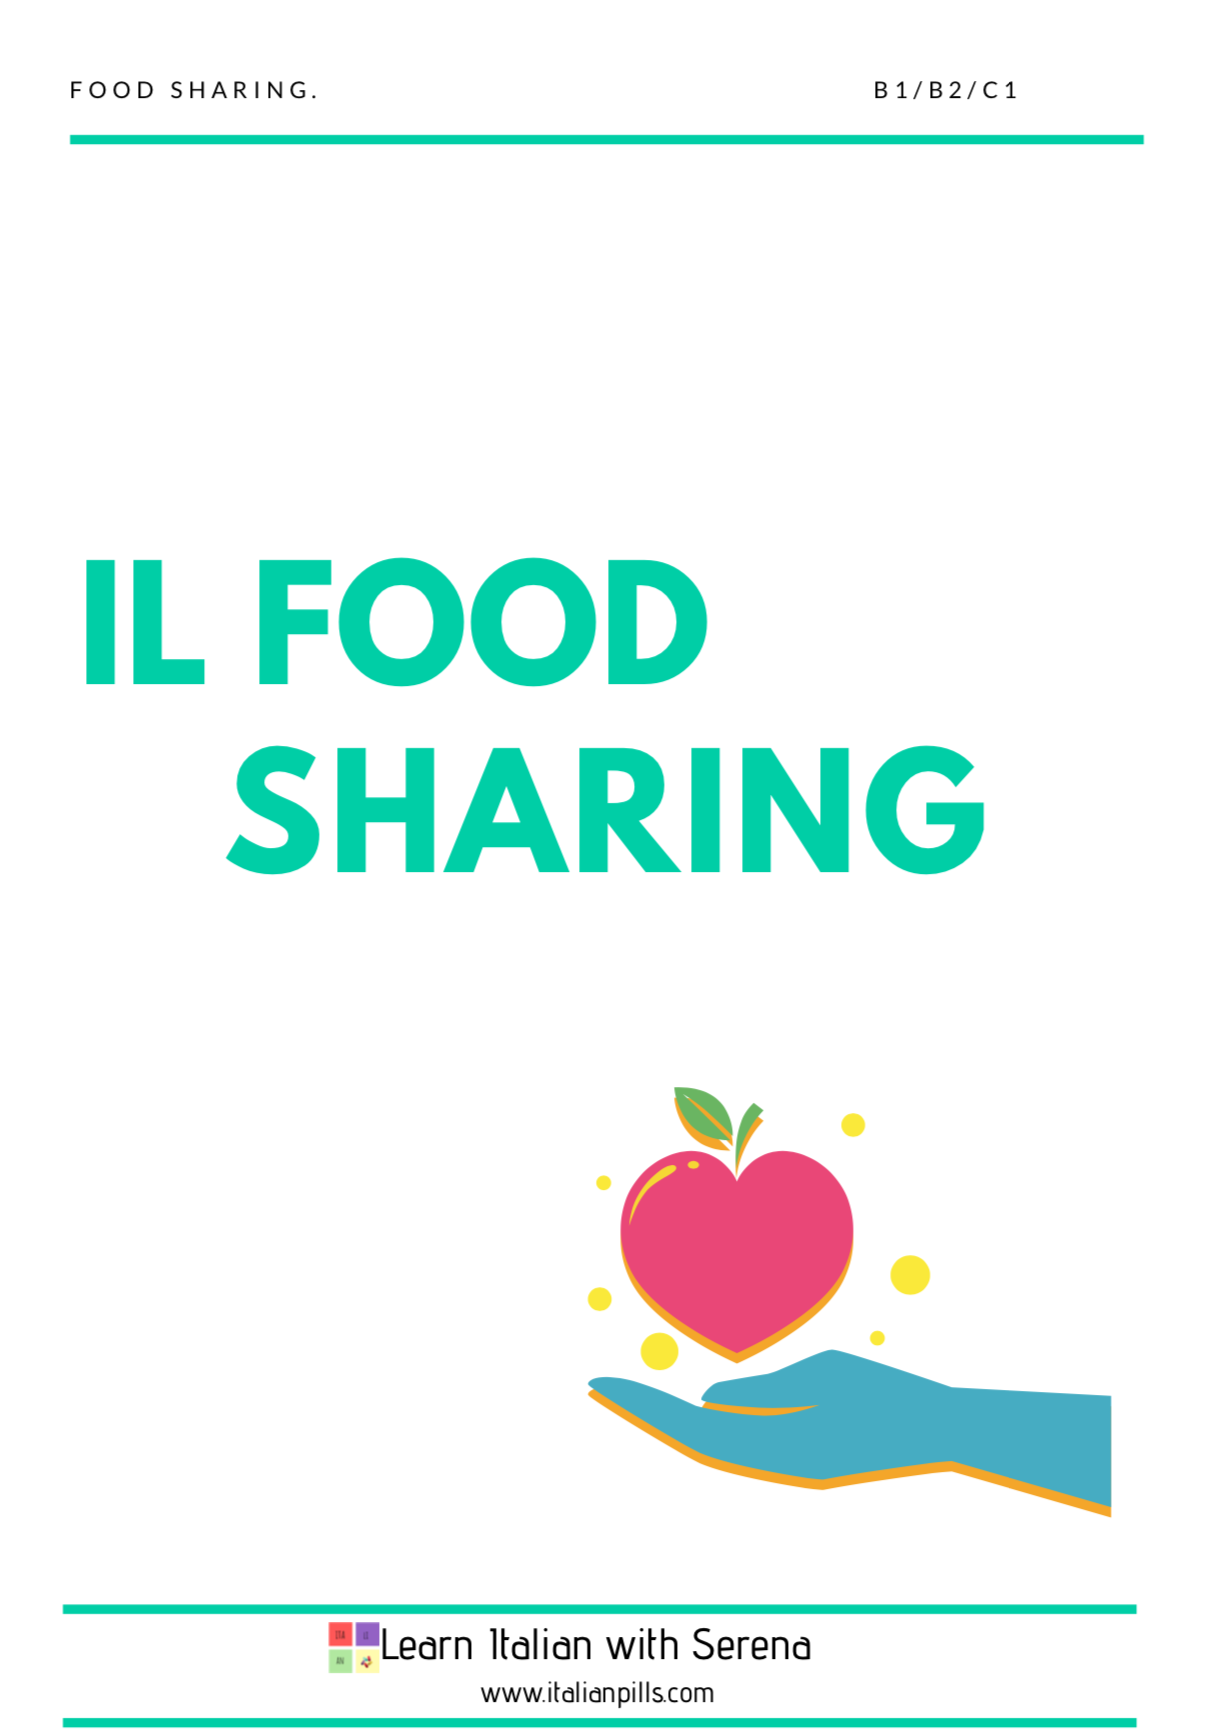 il food sharing (B1/B2/C1)